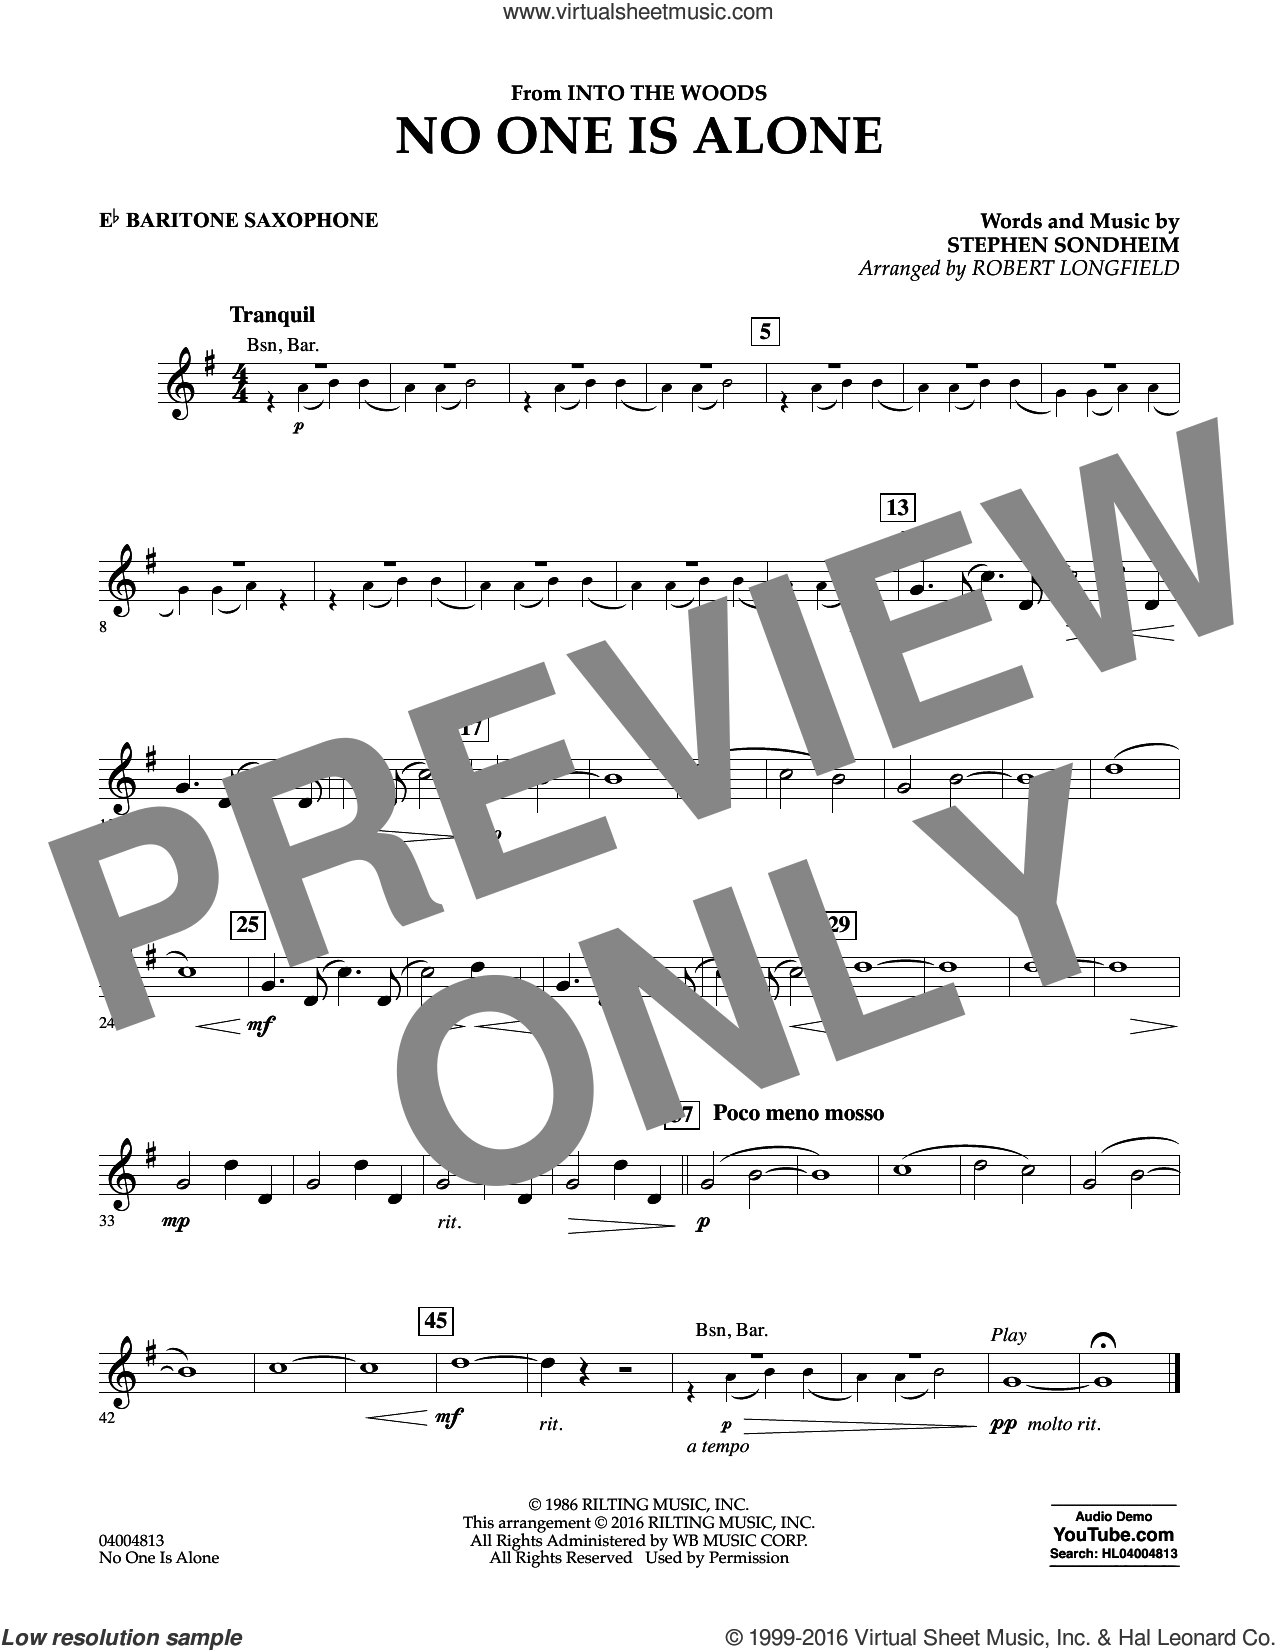 No One Is Alone sheet music for concert band (Eb baritone saxophone) by Stephen Sondheim and Robert Longfield, intermediate skill level